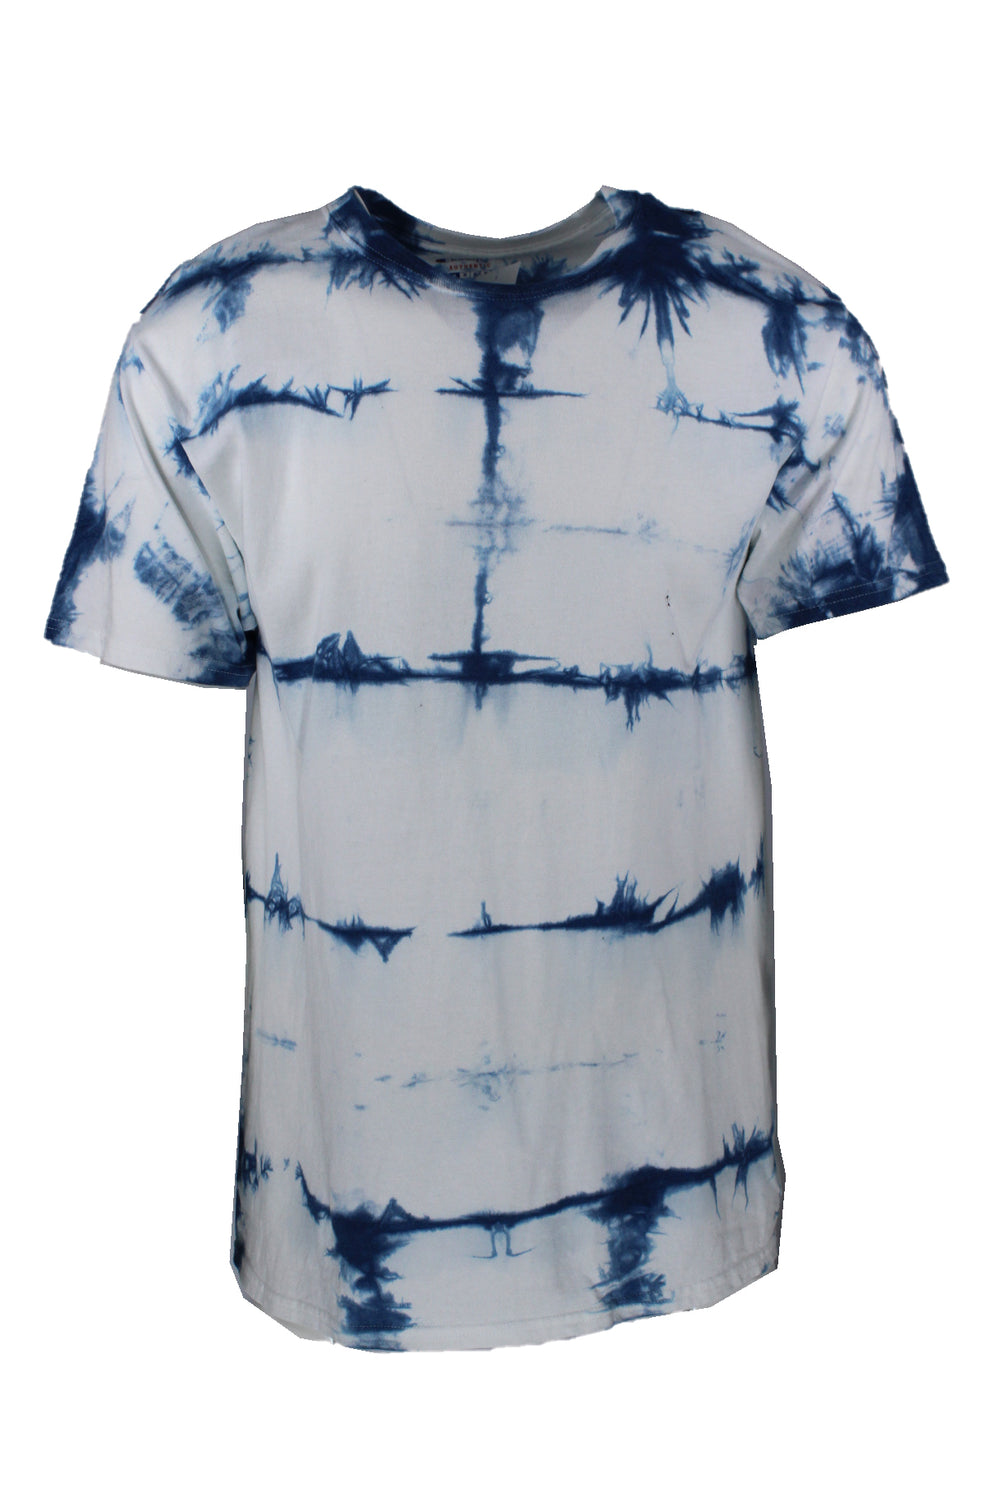 champion white t-shirt. features blue tie dye pattern throughout.